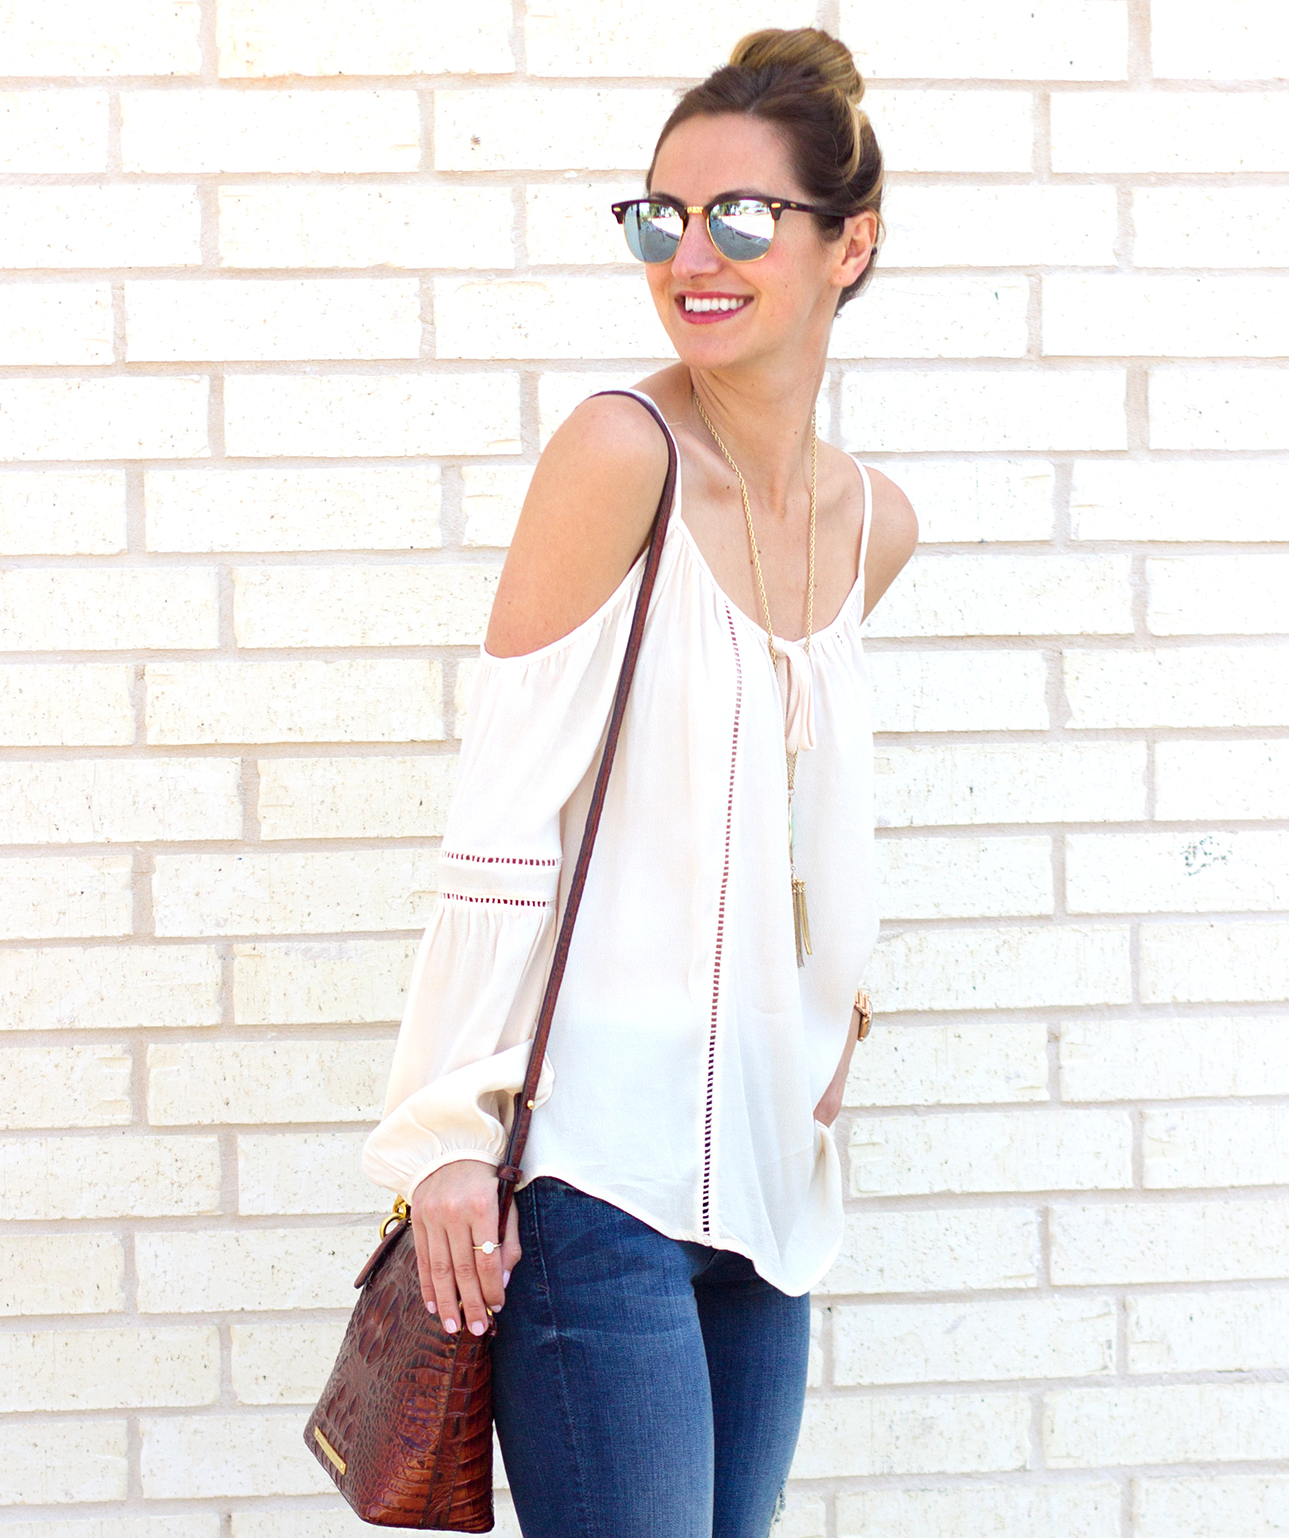 1-livvyland-blog-olivia-watson-austin-texas-fashion-blogger-kut-against-the-kloth-skinny-jeans-cream-nude-cold-shoulder-off-top-spring-nordstrom-stecy-heels-steve-madden-10